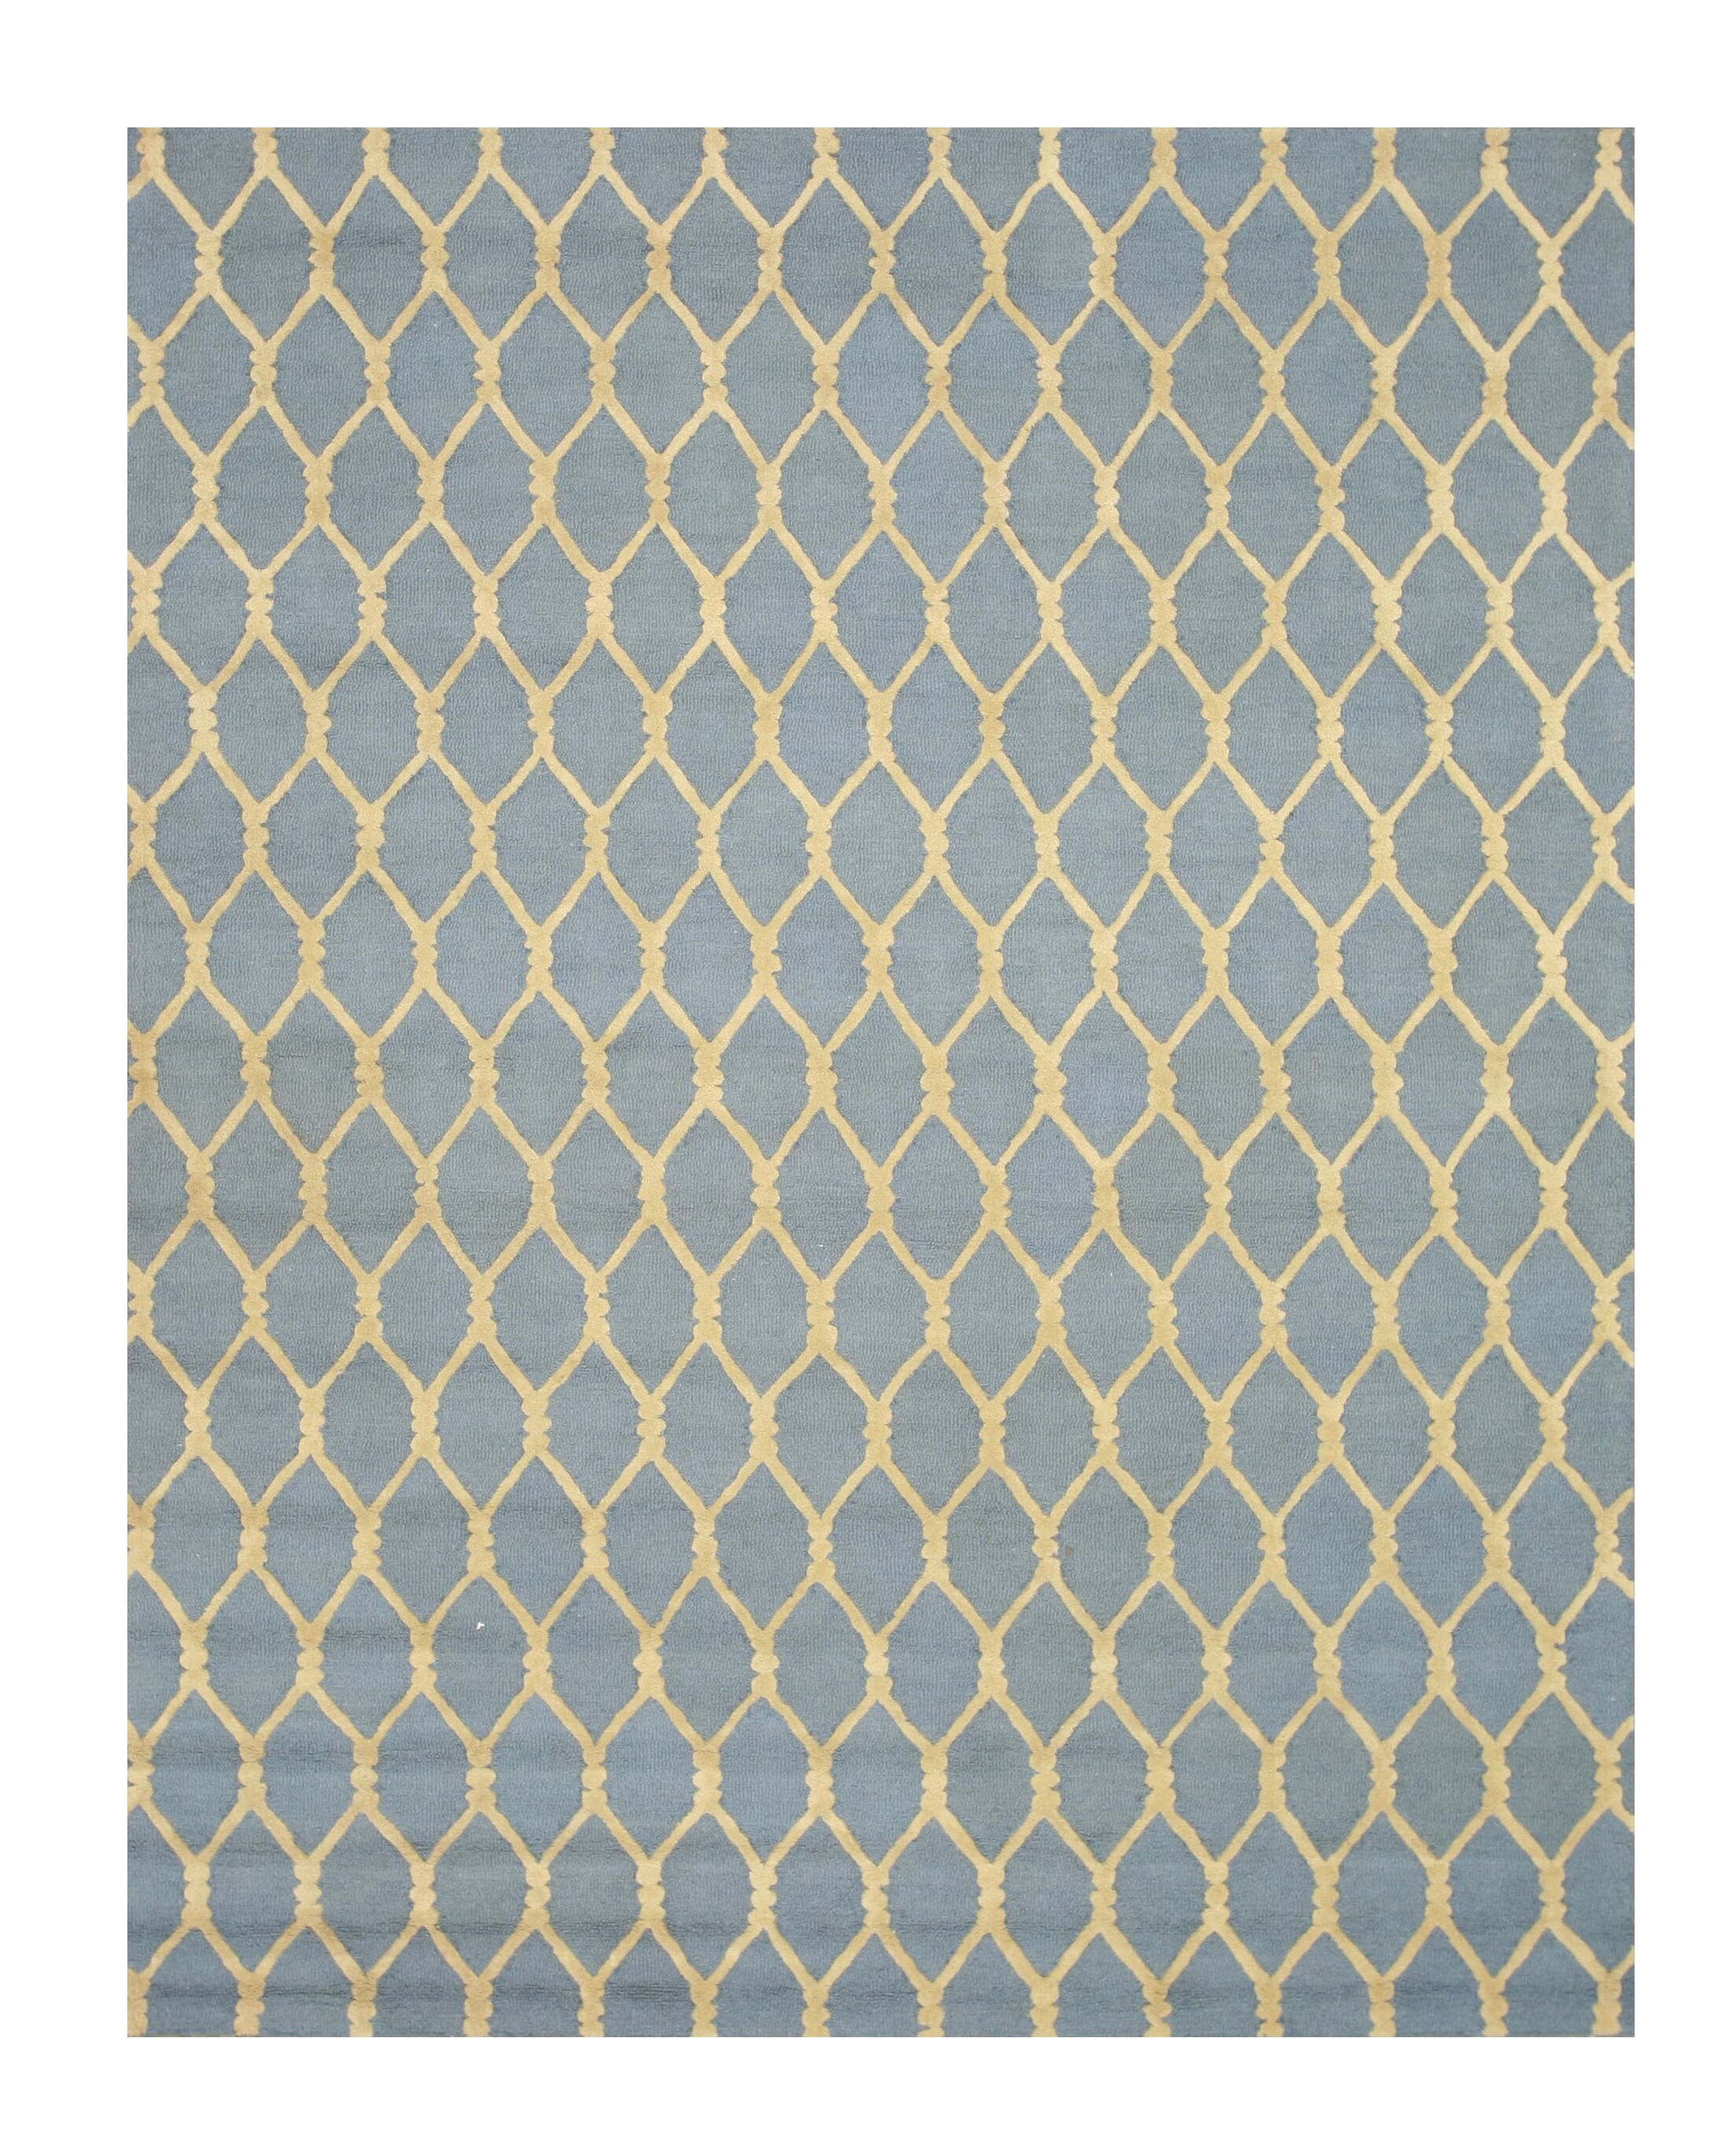 Hand-Tufted Blue Area Rug Rug Size: Rectangle 8'9